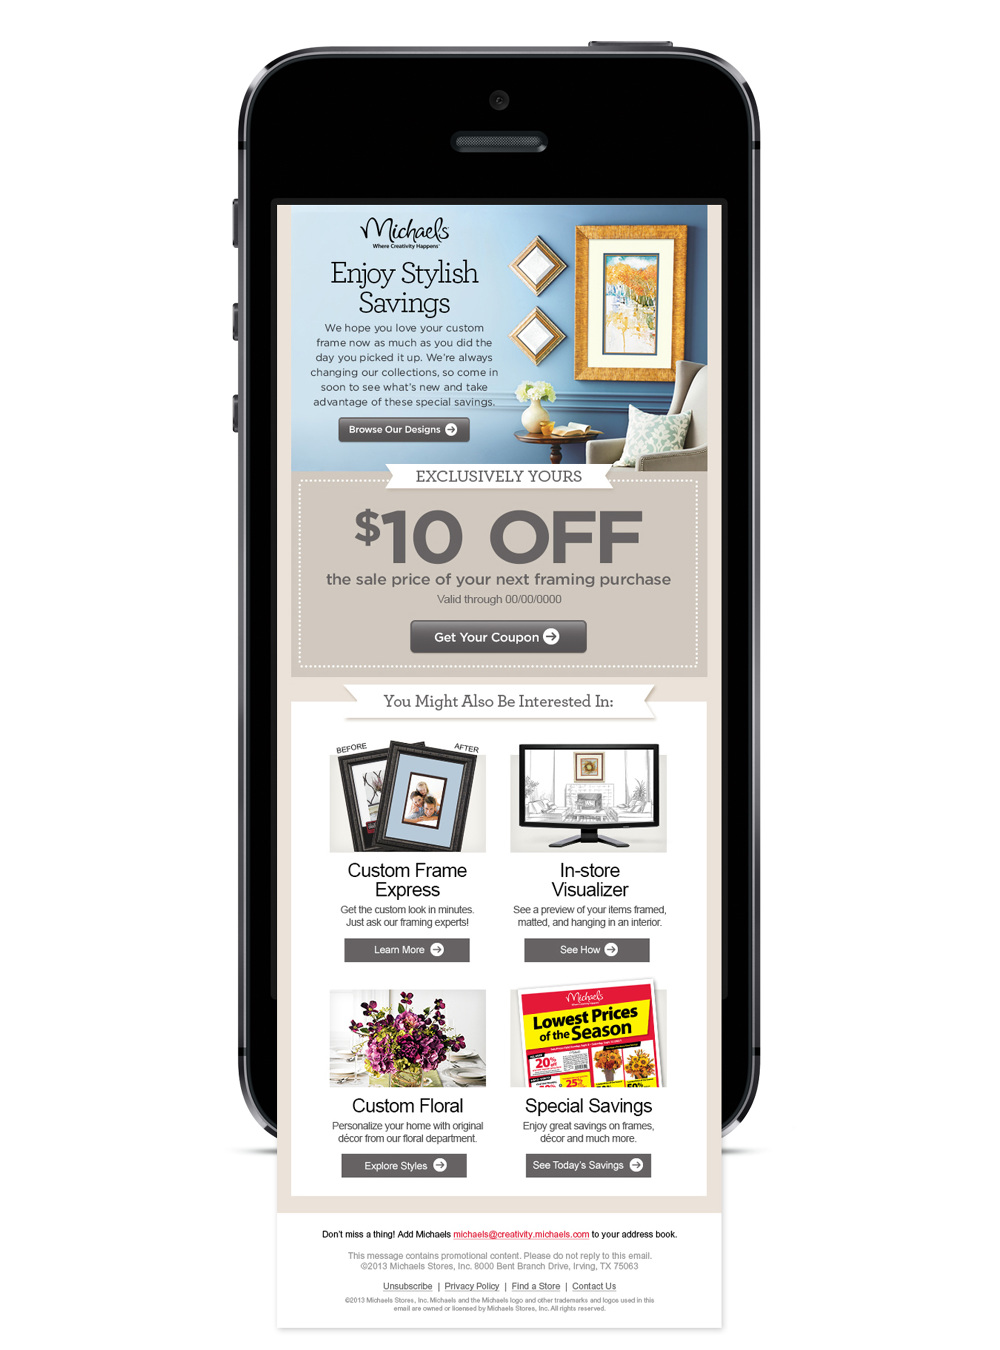 West marine coupons printable in-store